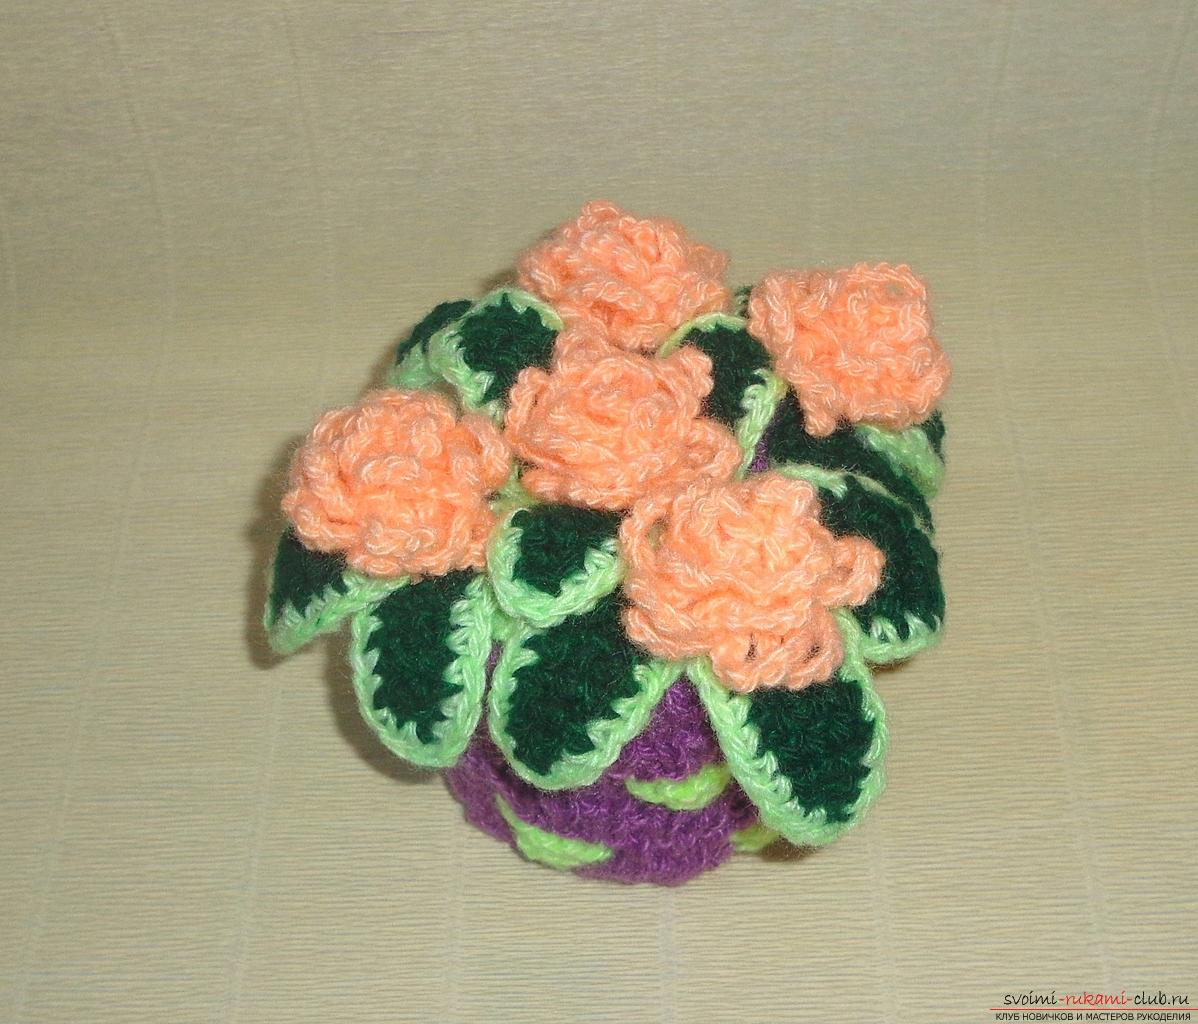 This master class of crochet crochet contains a rose scheme and a description of knitting .. Photo # 1